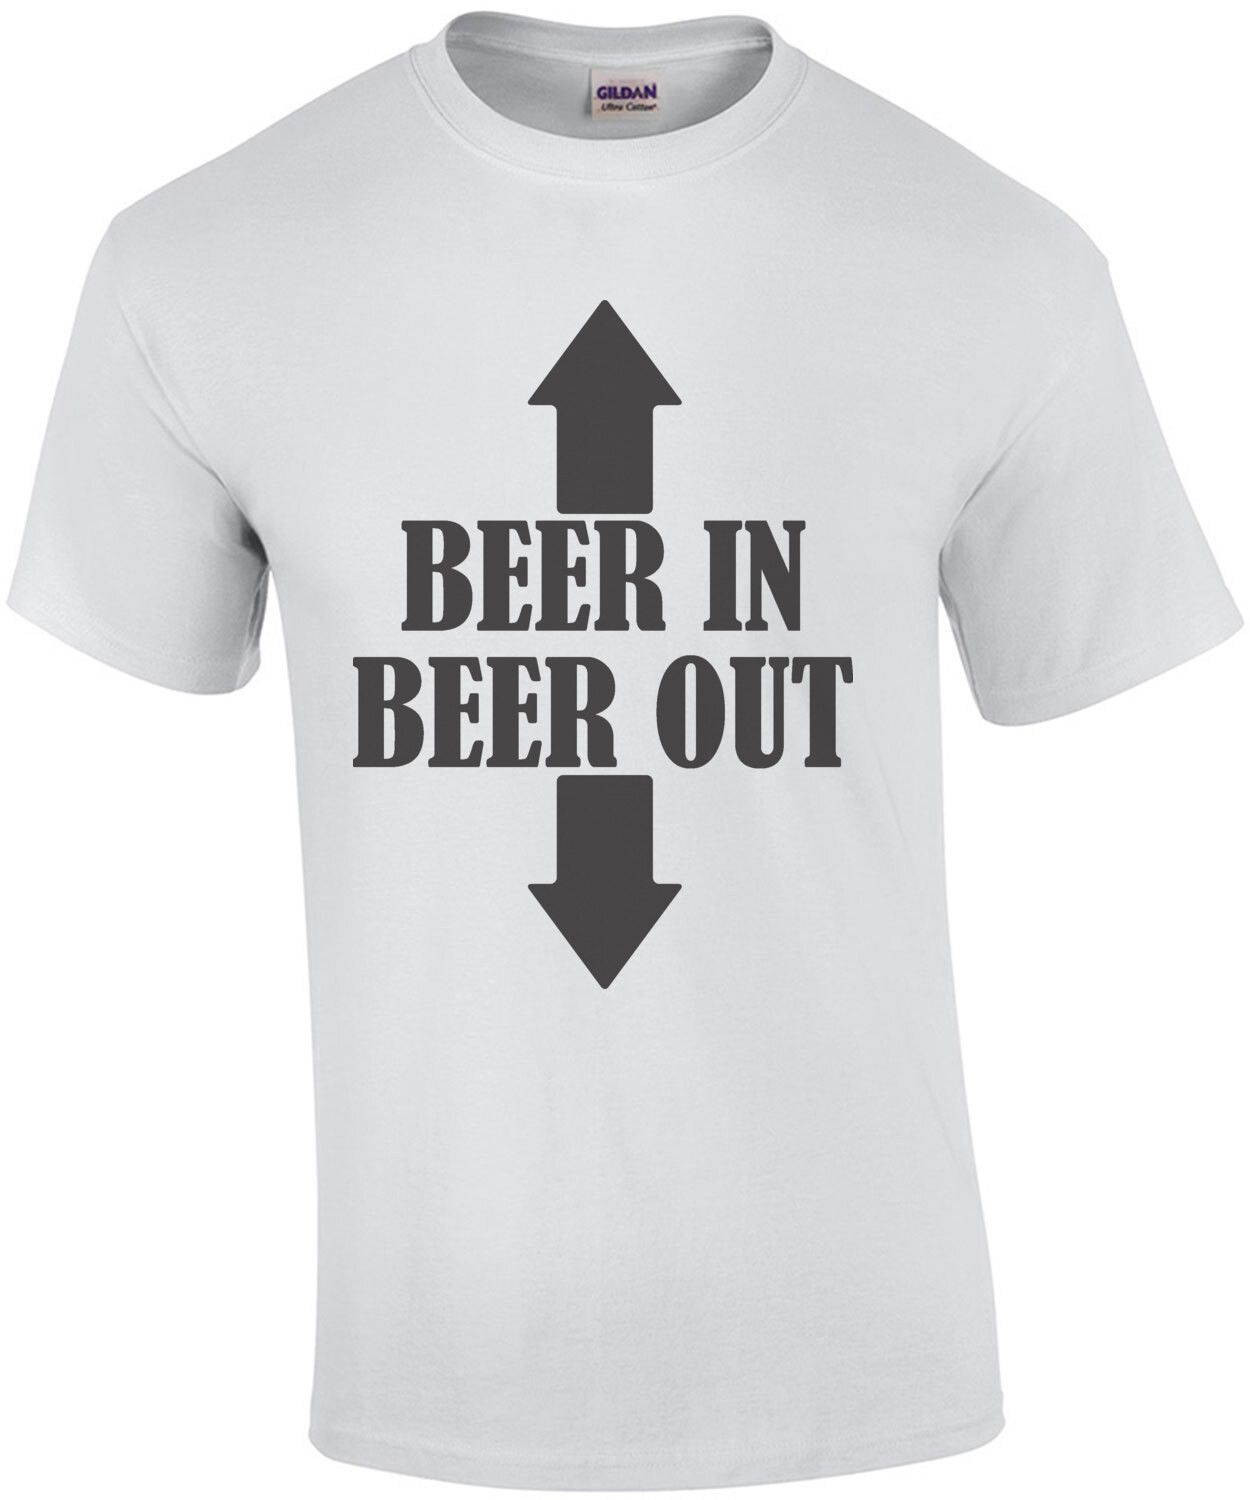 Beer in - Beer out - funny beer drinking t-shirt